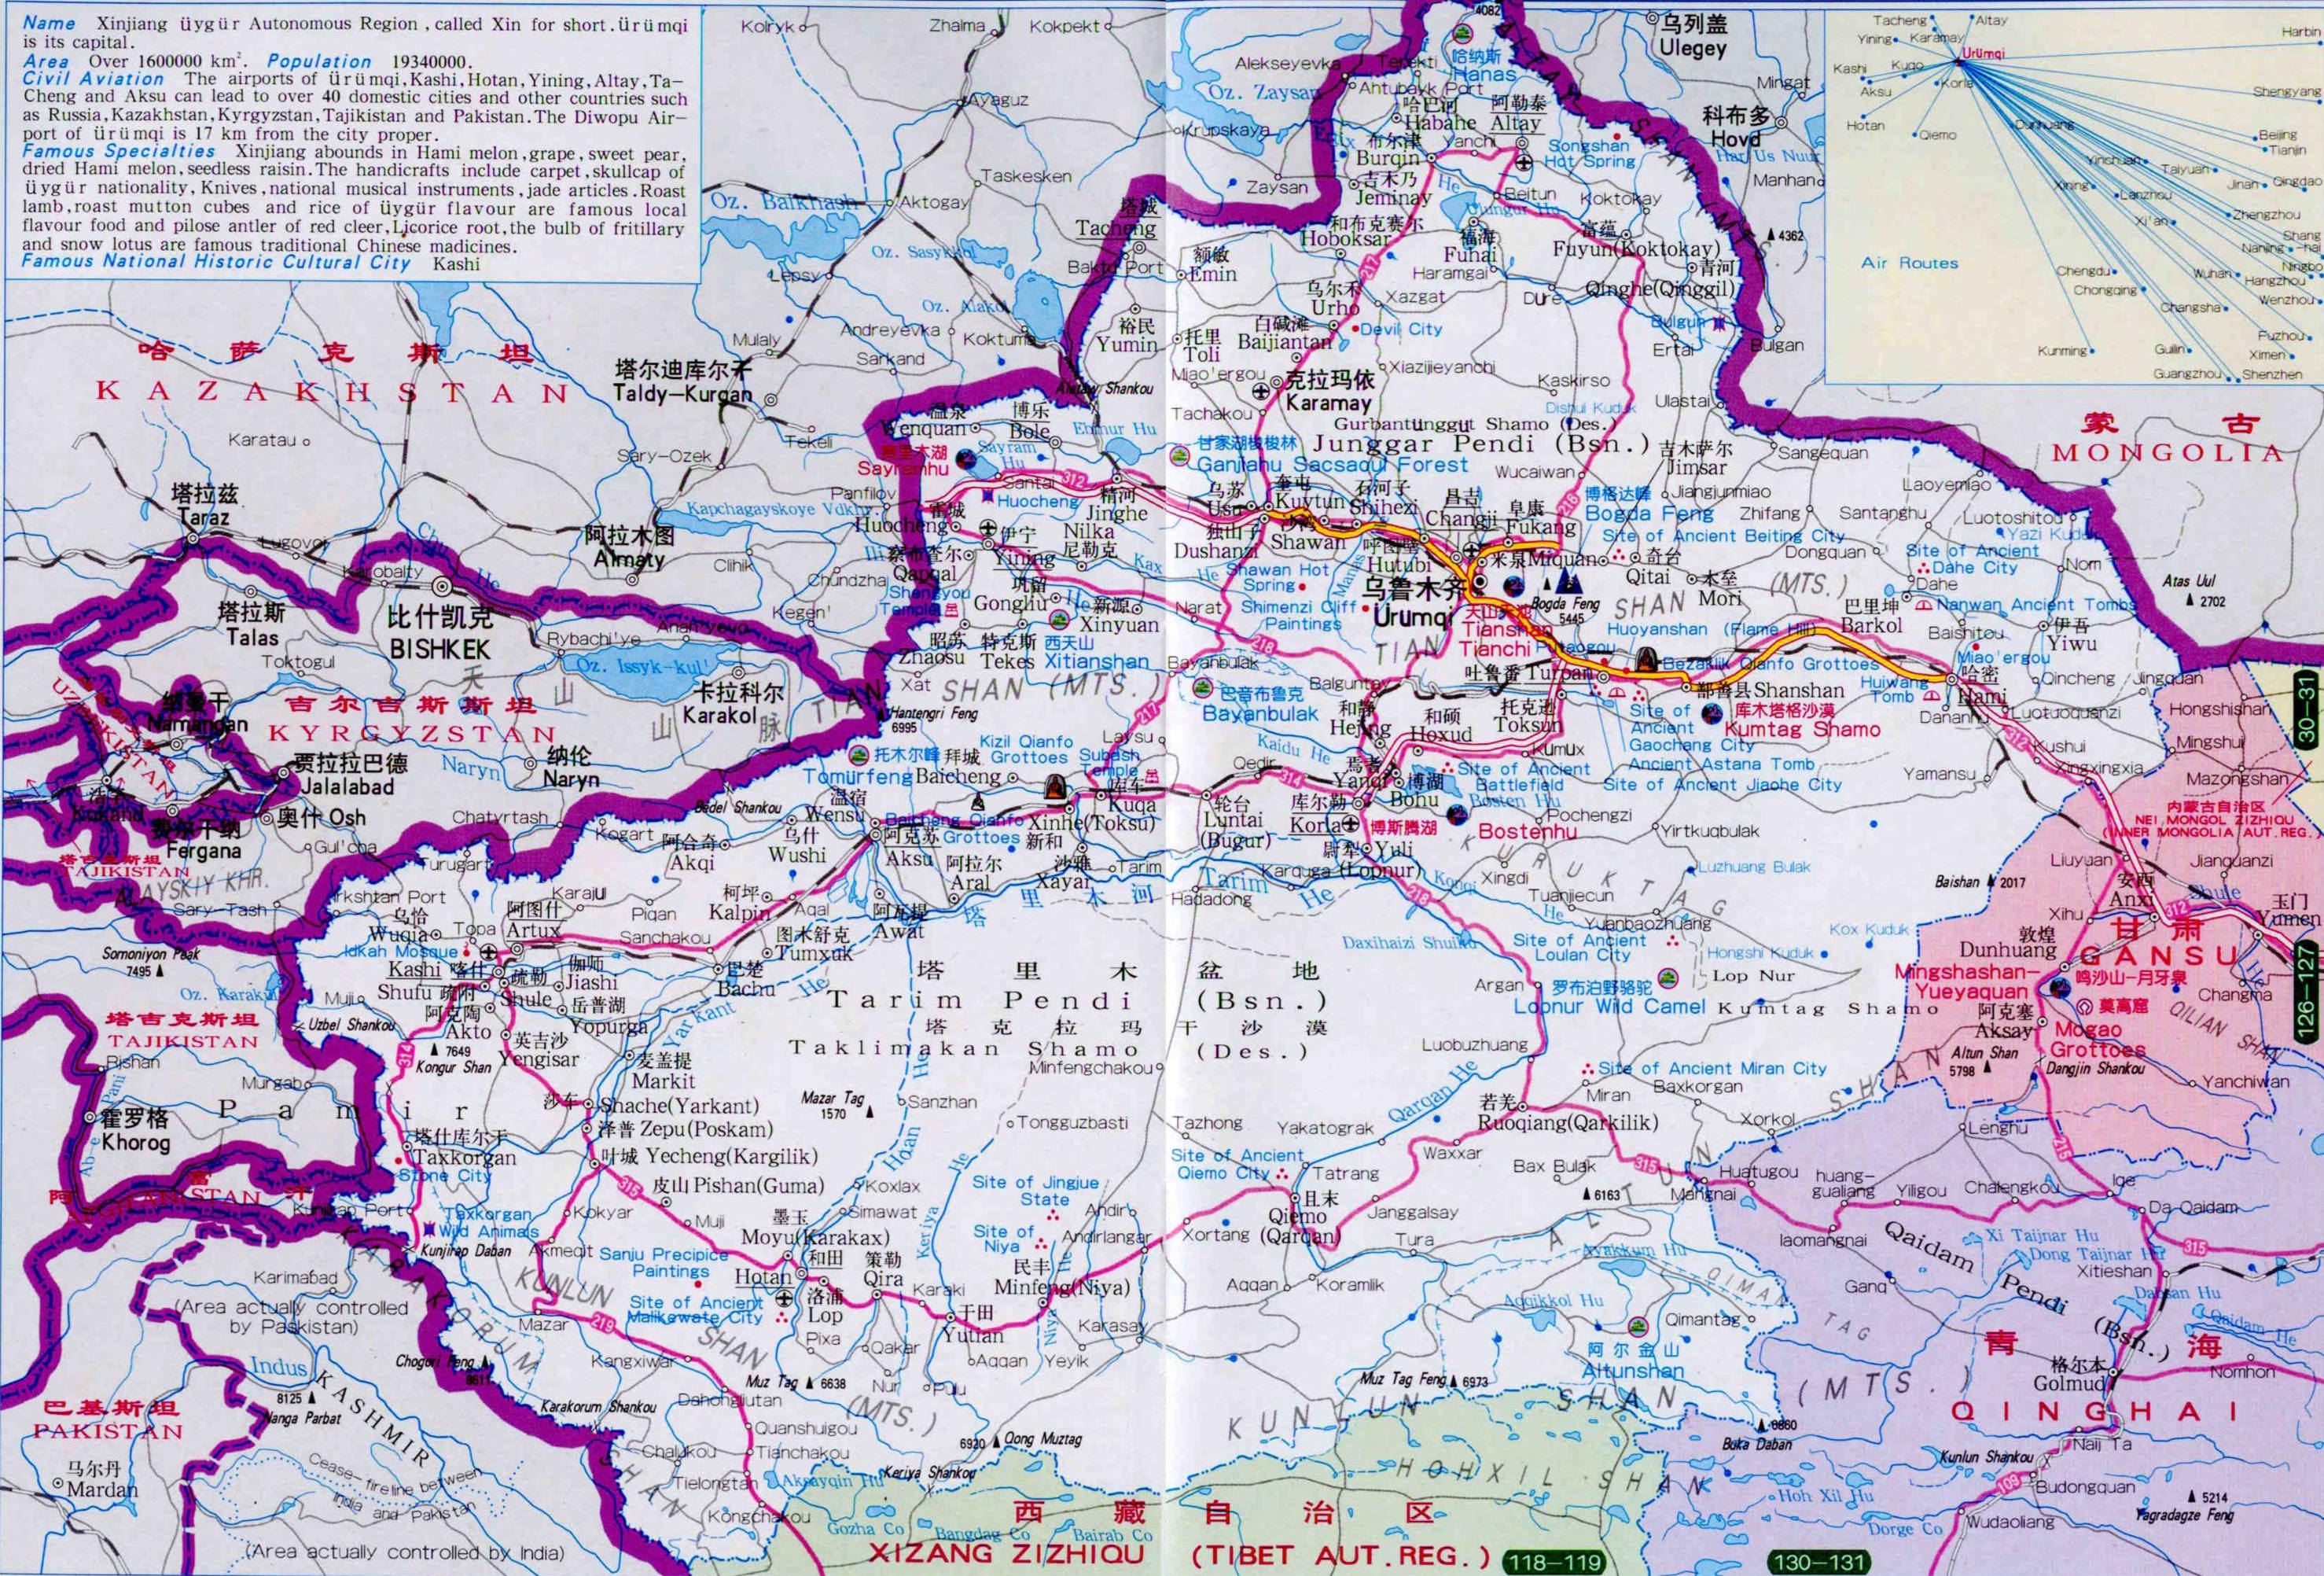 India Tourist Maps and Travel Information Guide